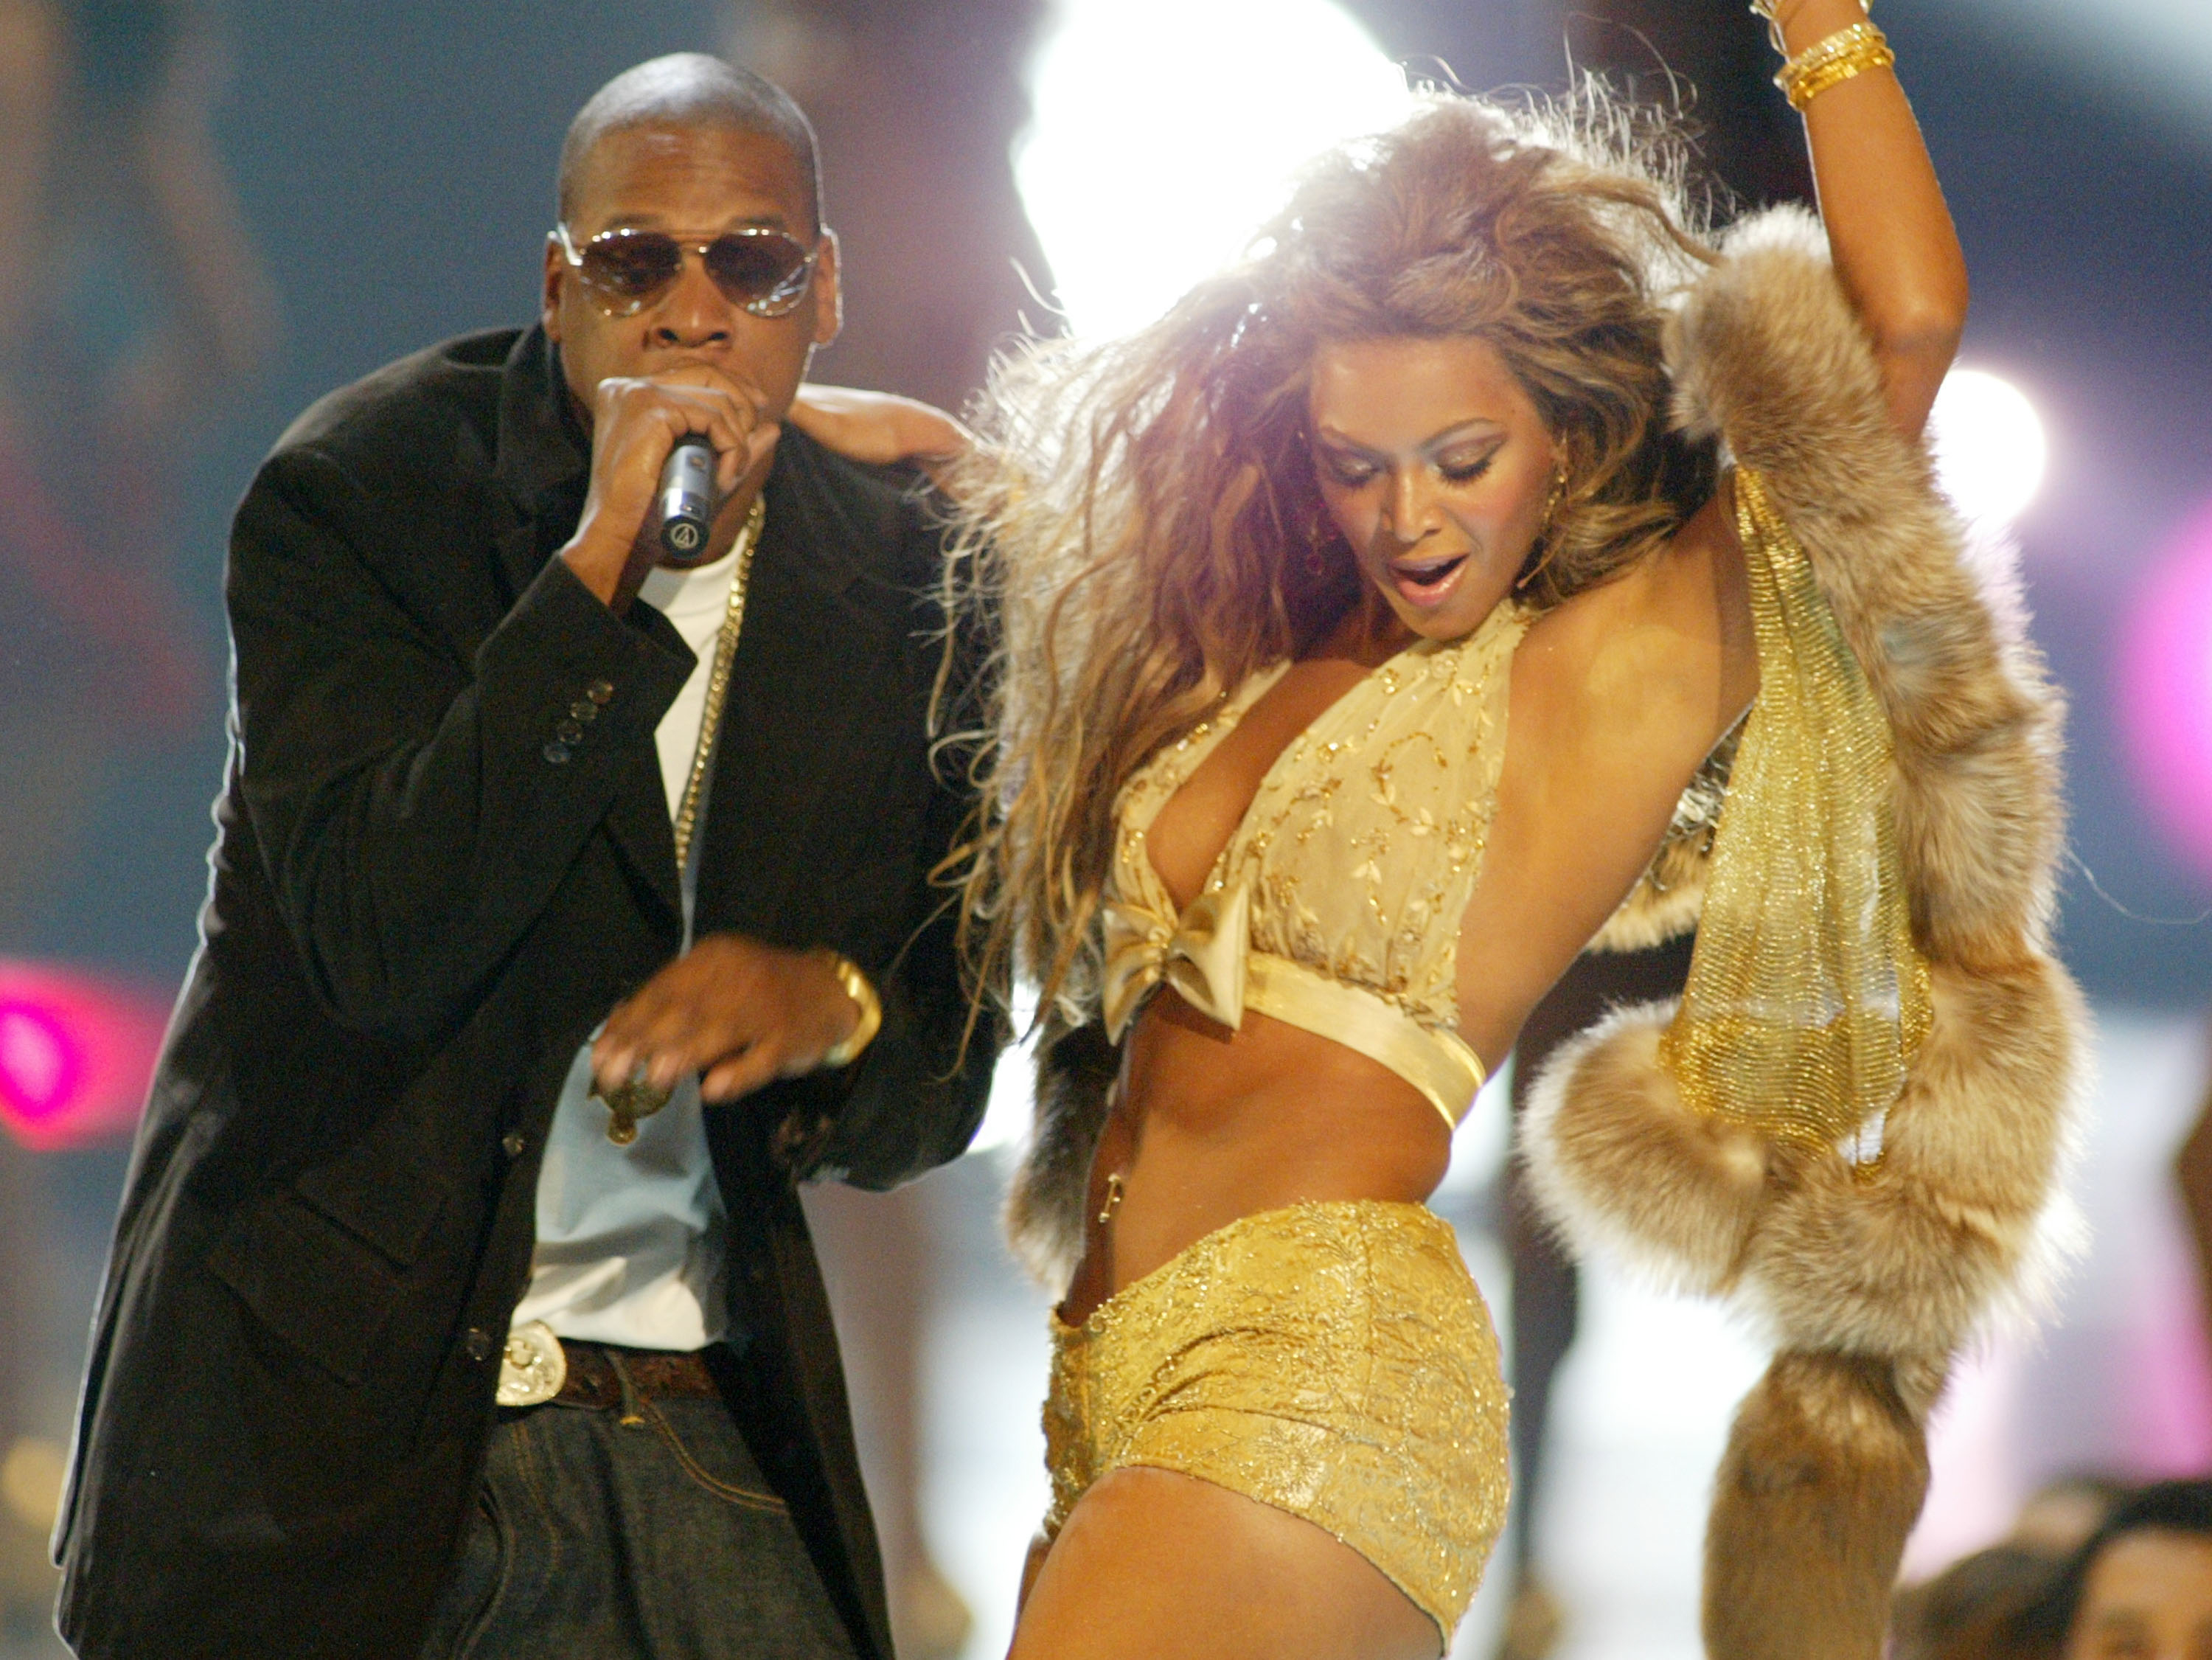 Beyonce introduced the video on the scandalous song about the betrayal of her husband